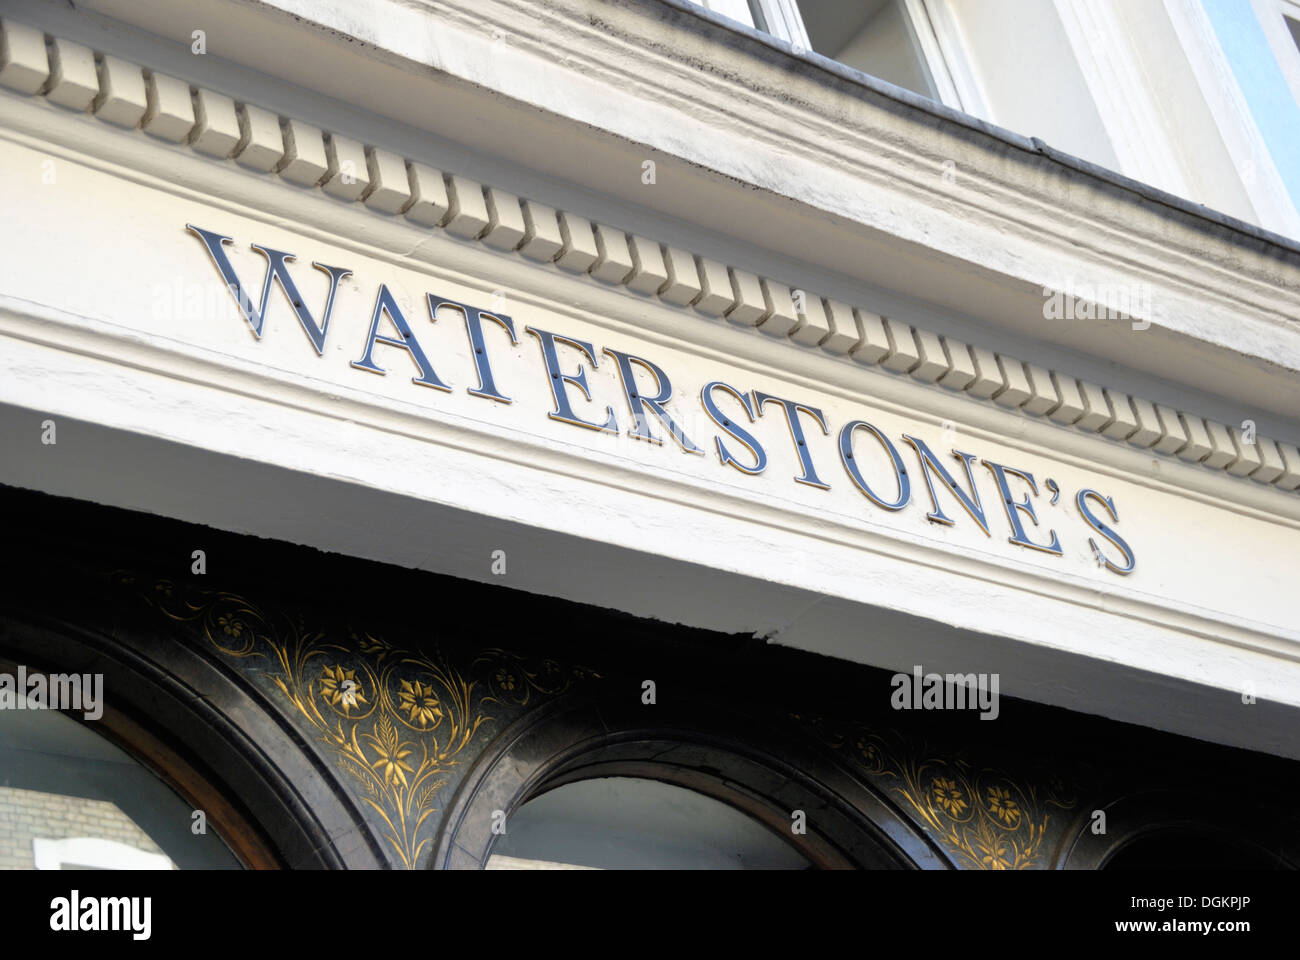 At Waterstones In London Stock Photos & At Waterstones In London ...